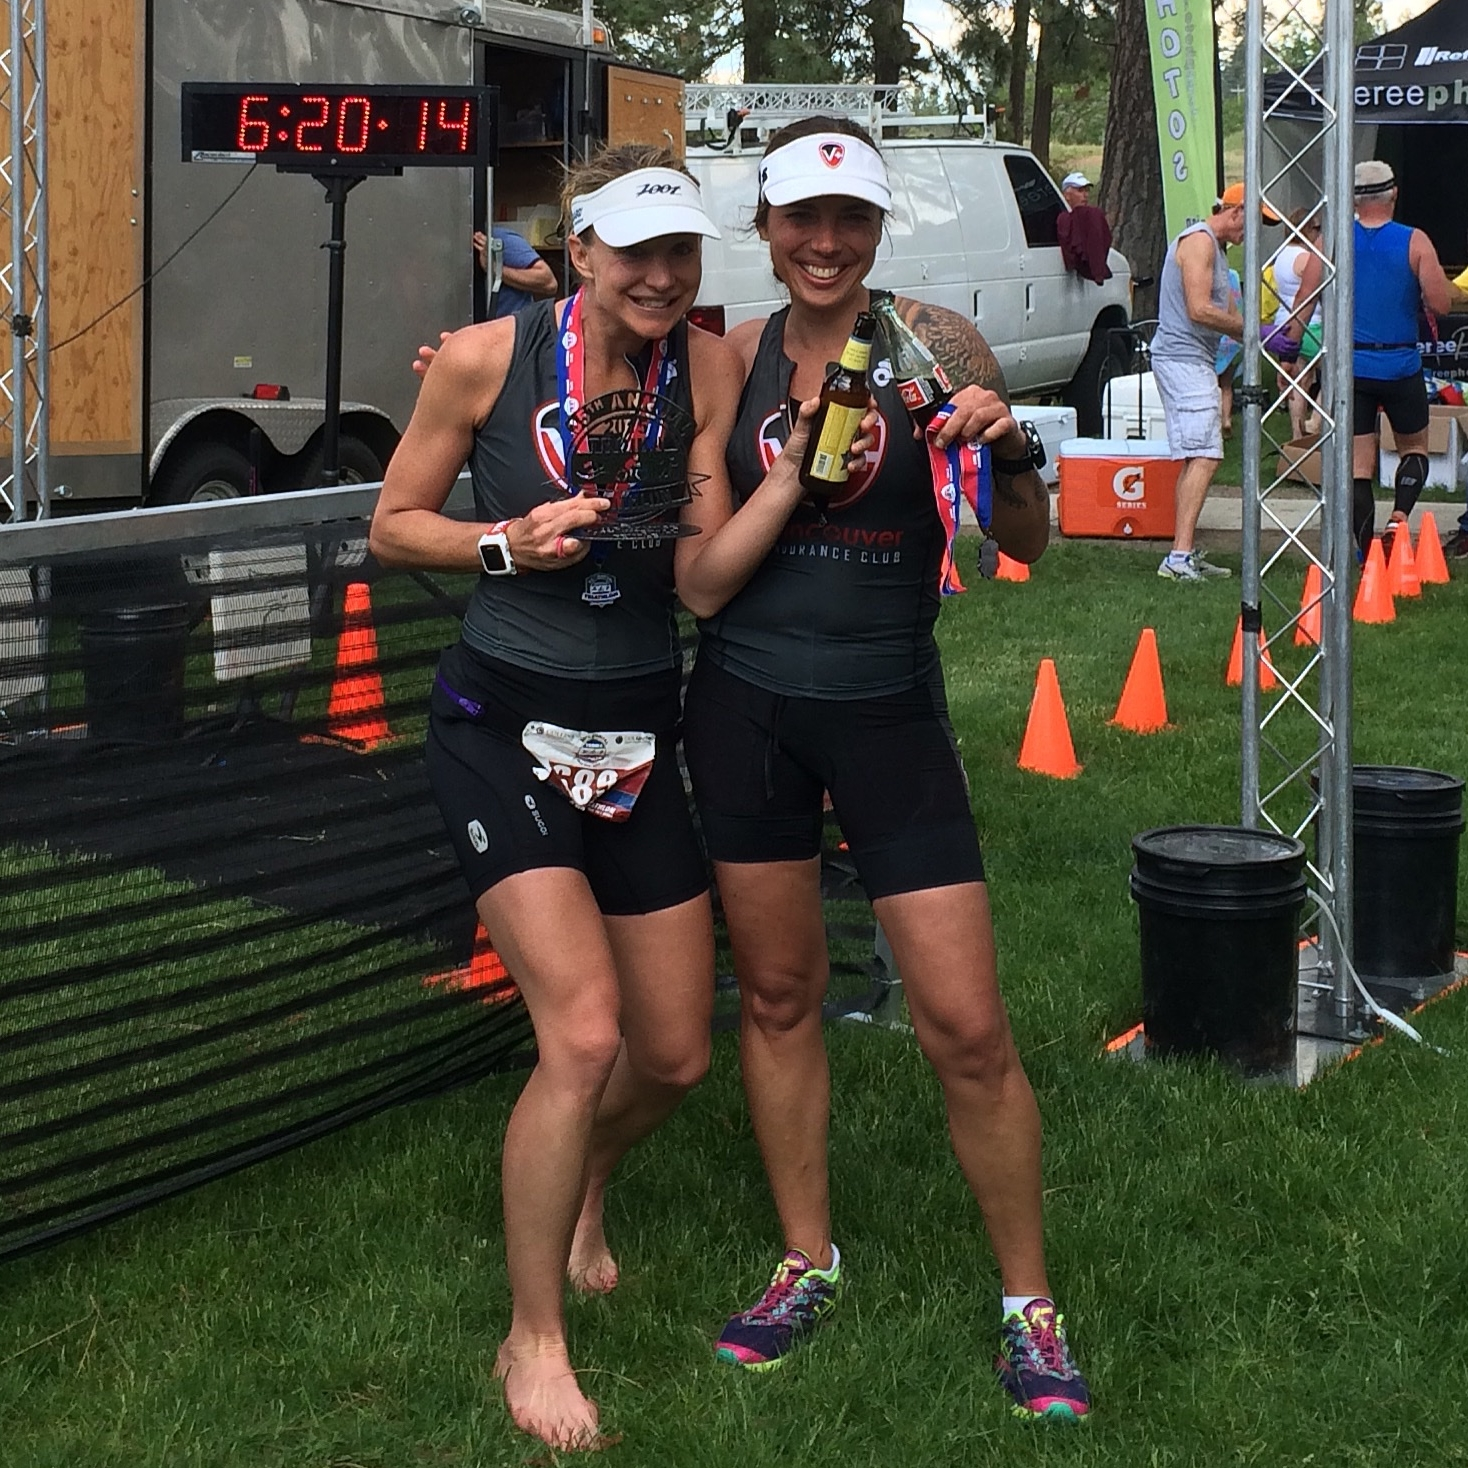 Dierdre and Juliet; post-race treats in hand